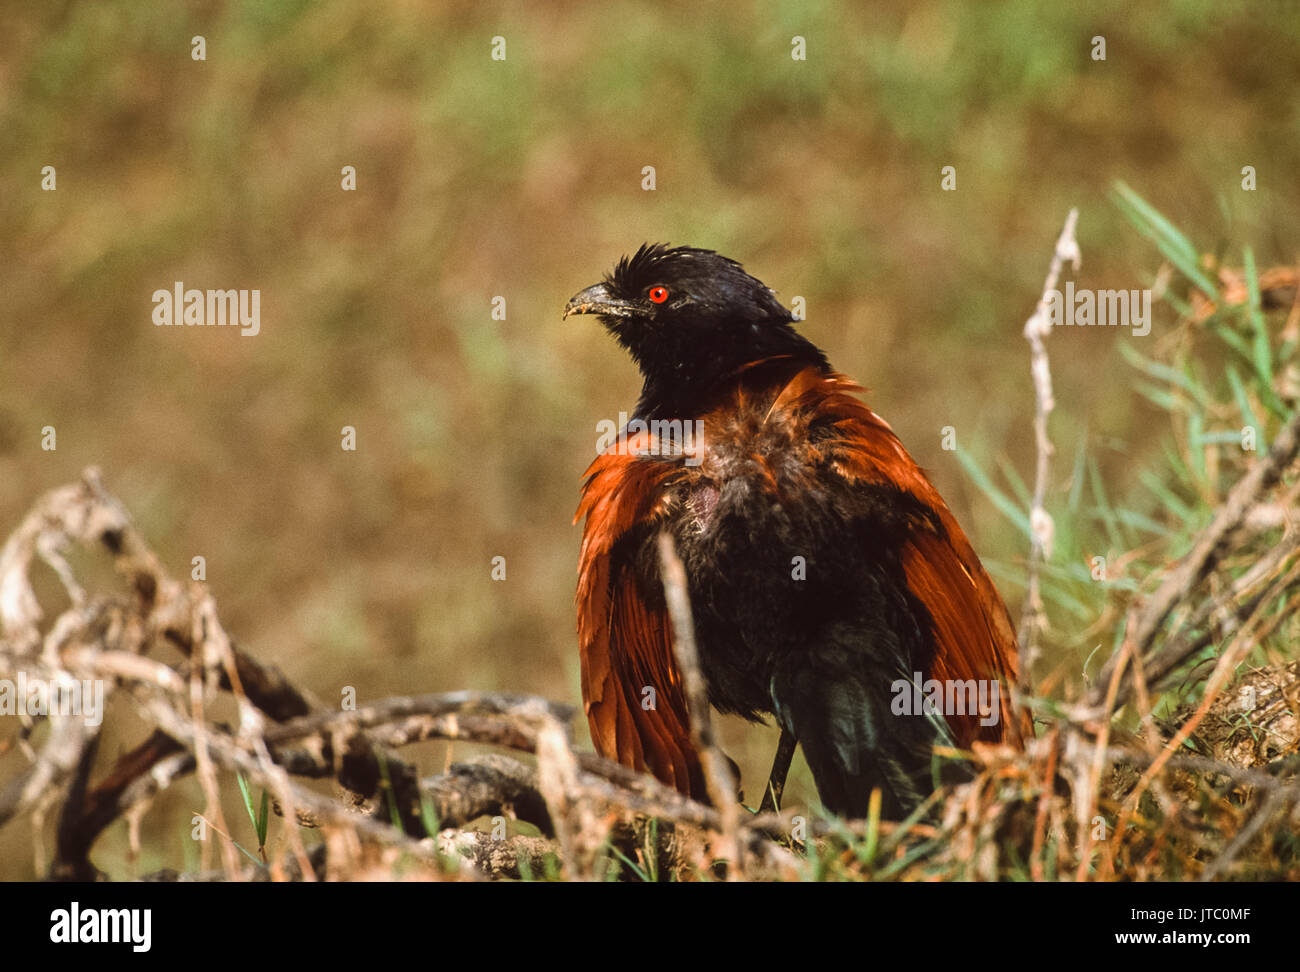 Greater Coucal, (Centropus sinenesis), sunbathing to rid plumage from parasites, Keoladeo Ghana National Park, Bharatpur, Rajasthan, India - Stock Image